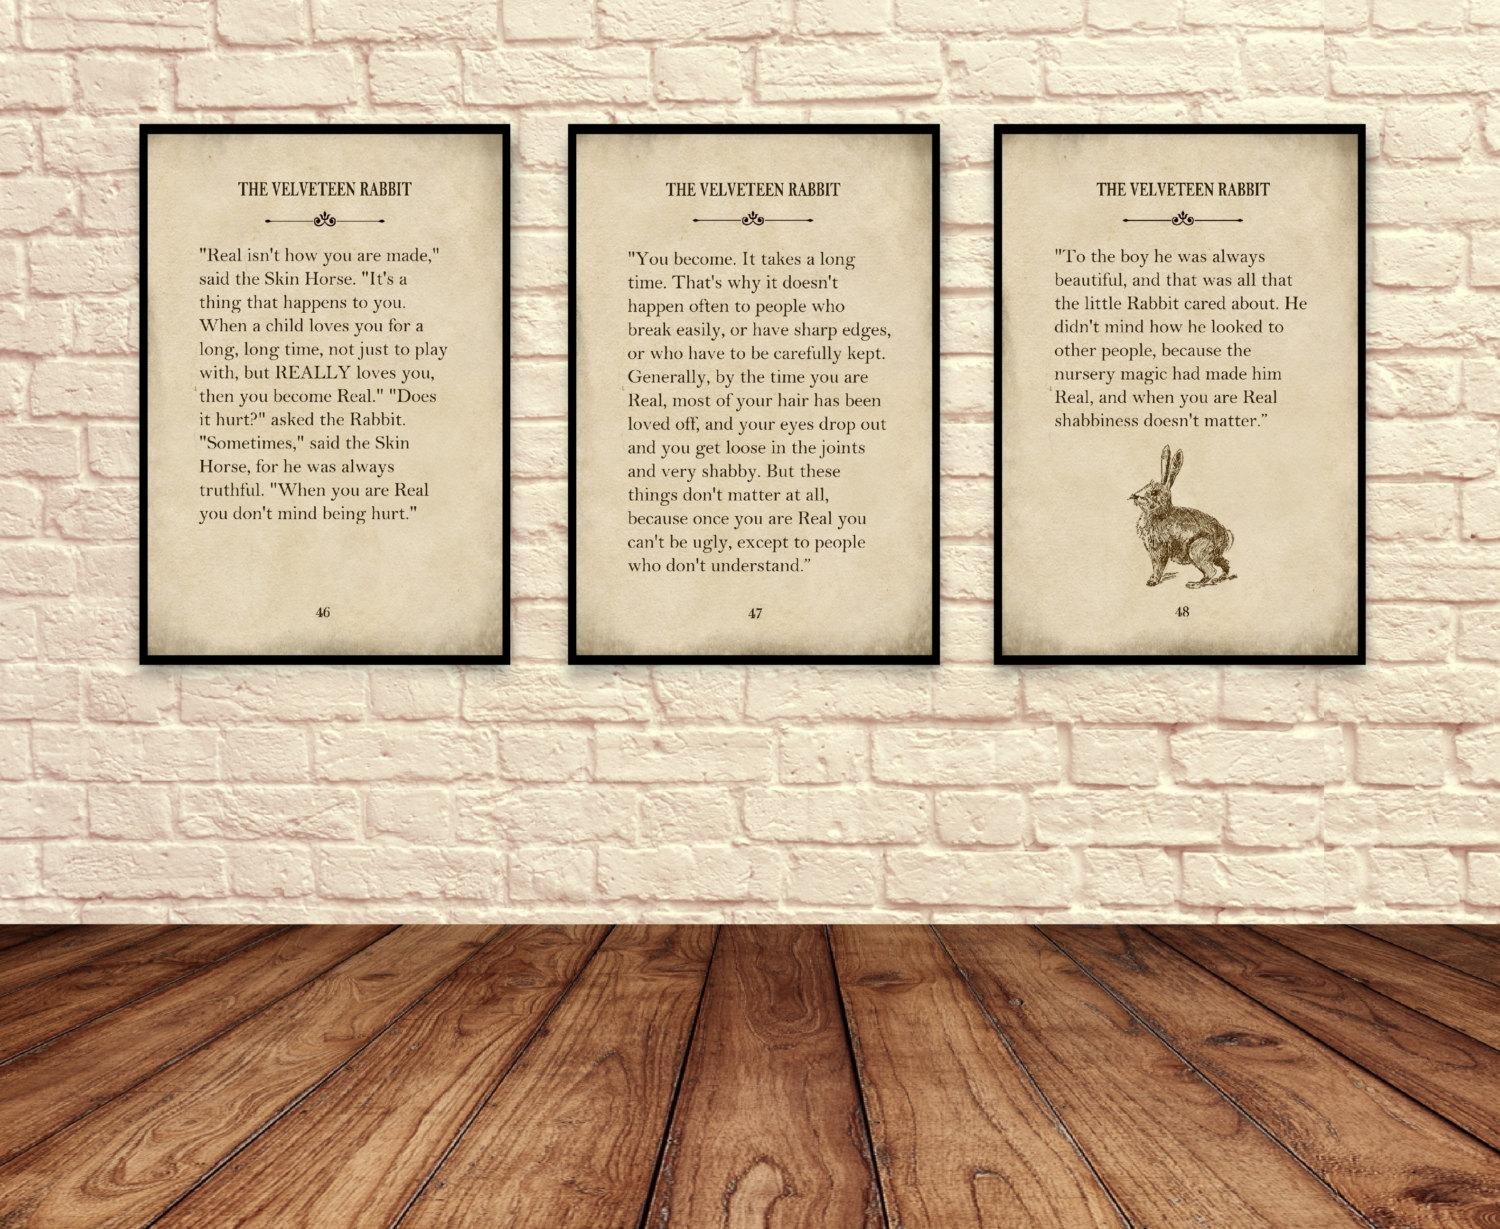 Velveteen Rabbit Wall Art Velveteen Rabbit Art Pints Story Pertaining To Velveteen Rabbit Wall Art (Image 17 of 20)